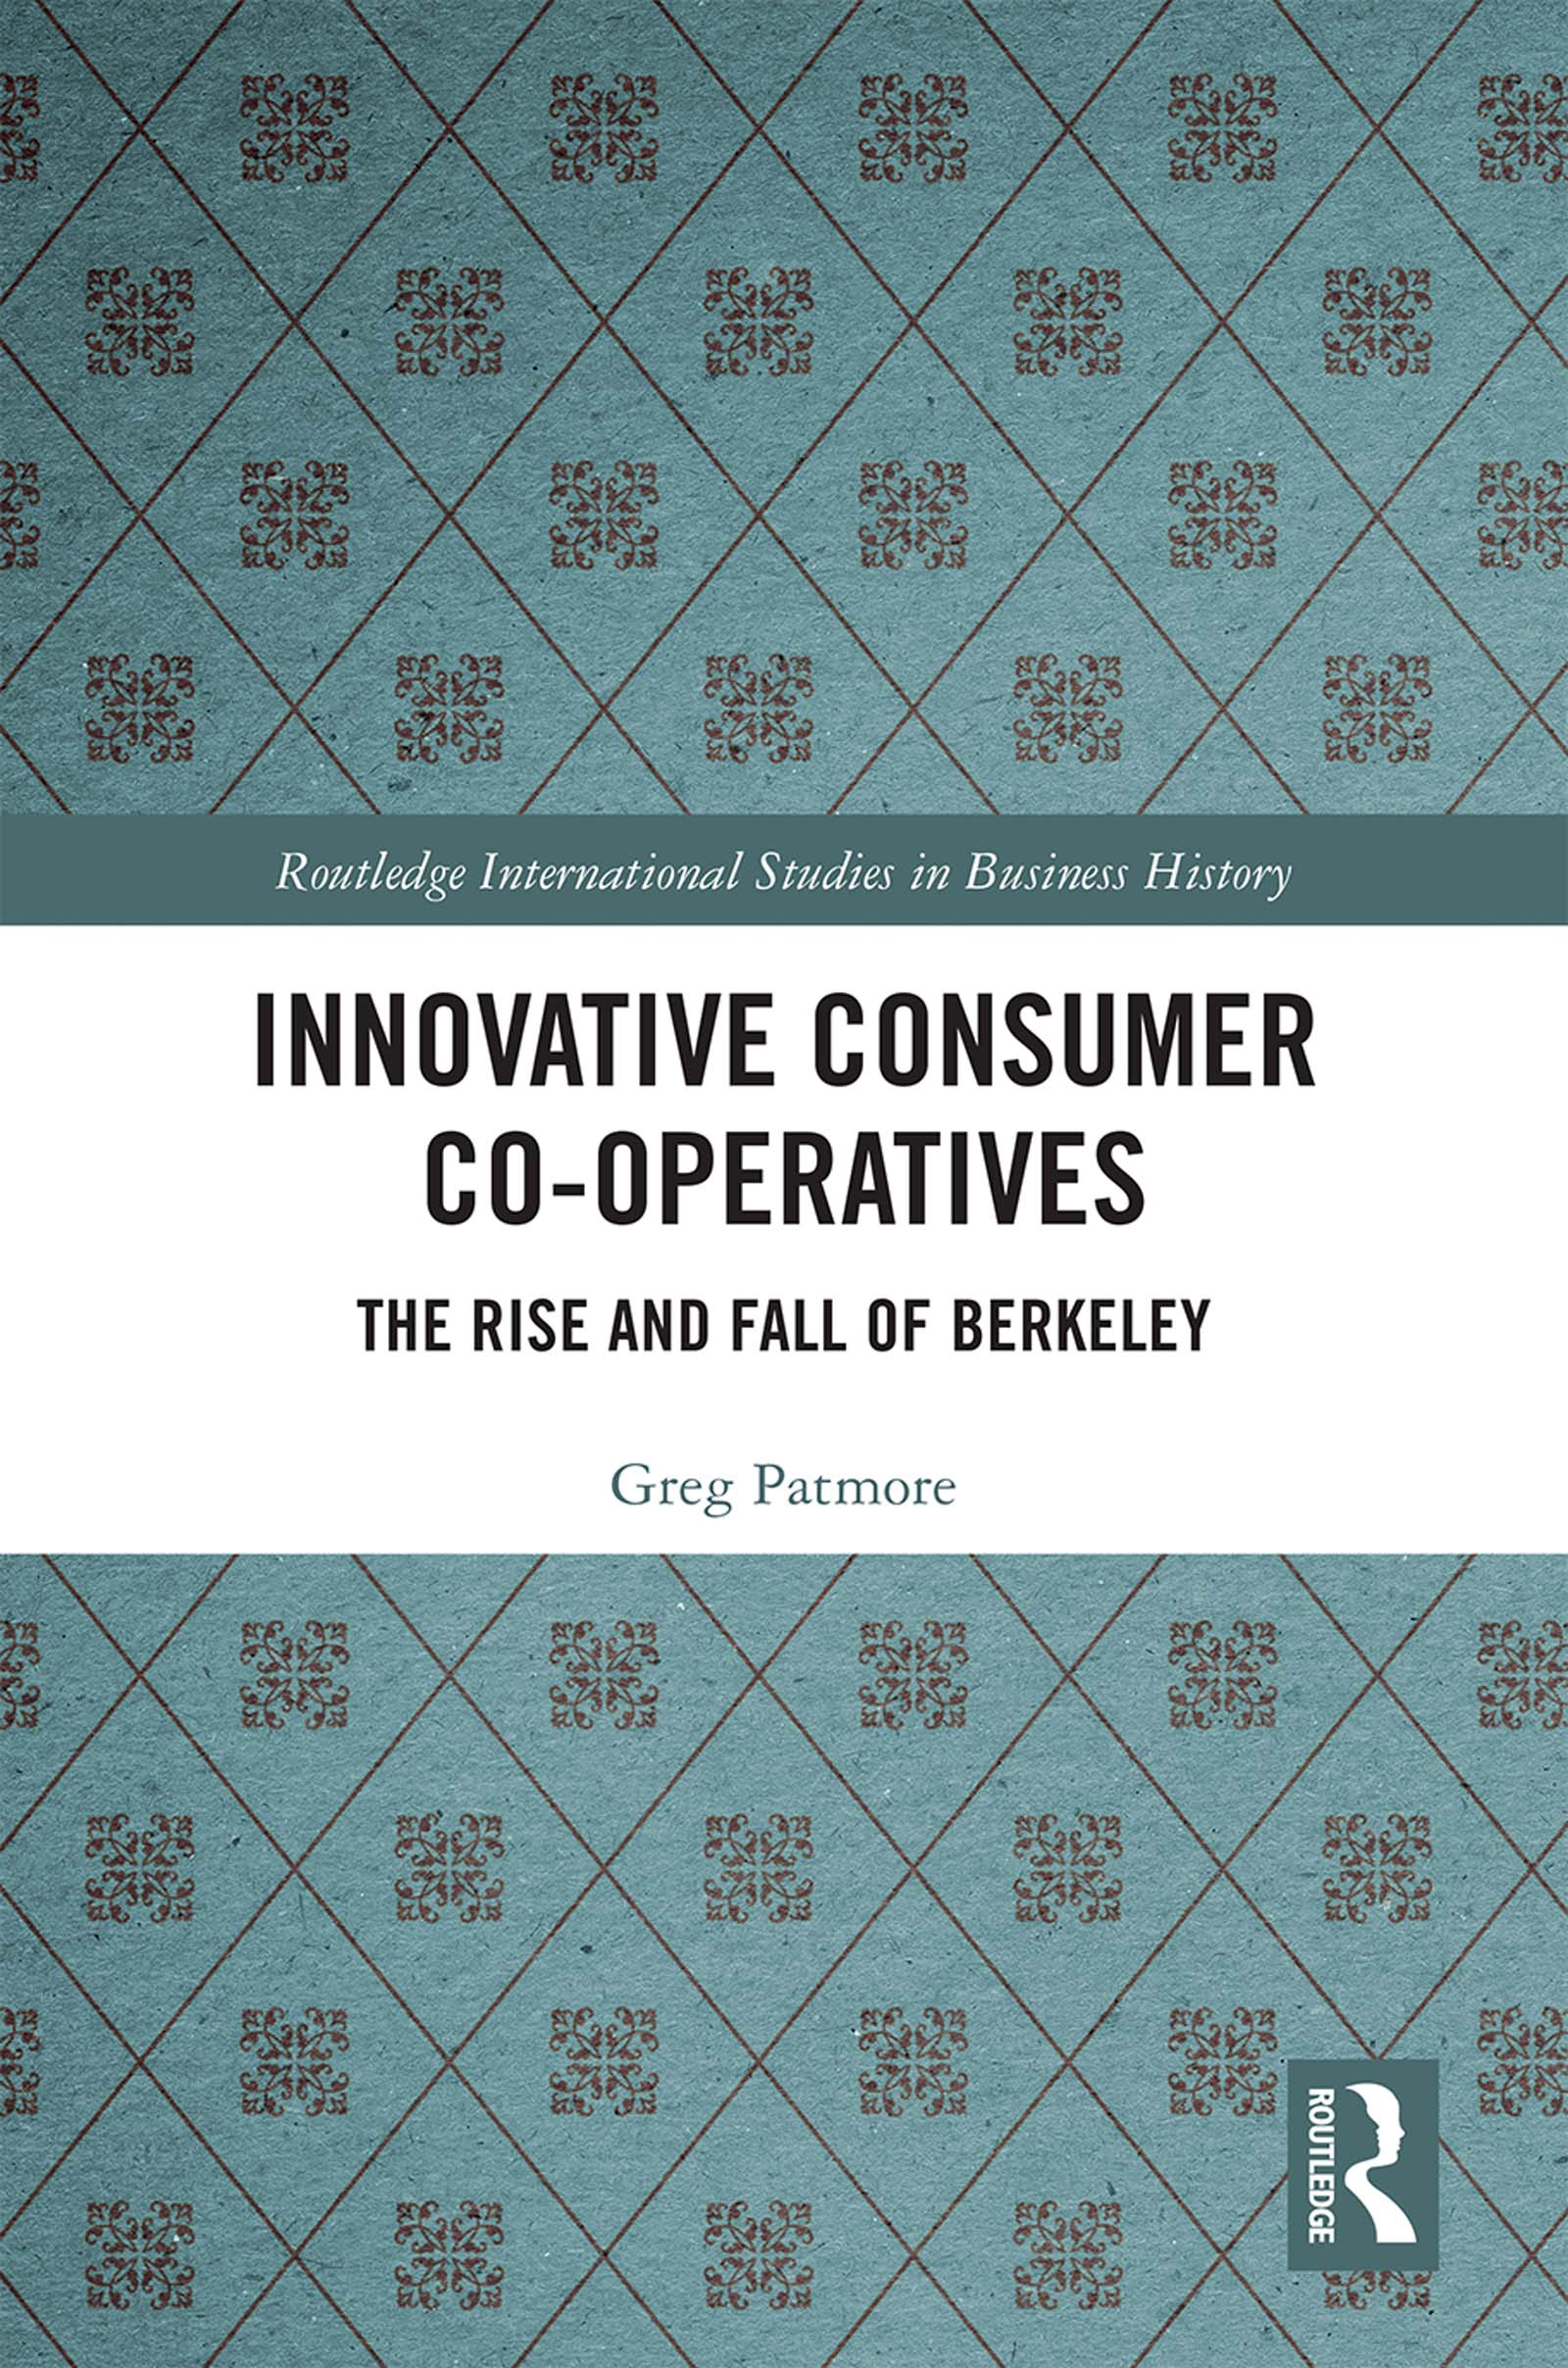 Innovative Consumer Co-operatives: The Rise and Fall of Berkeley book cover